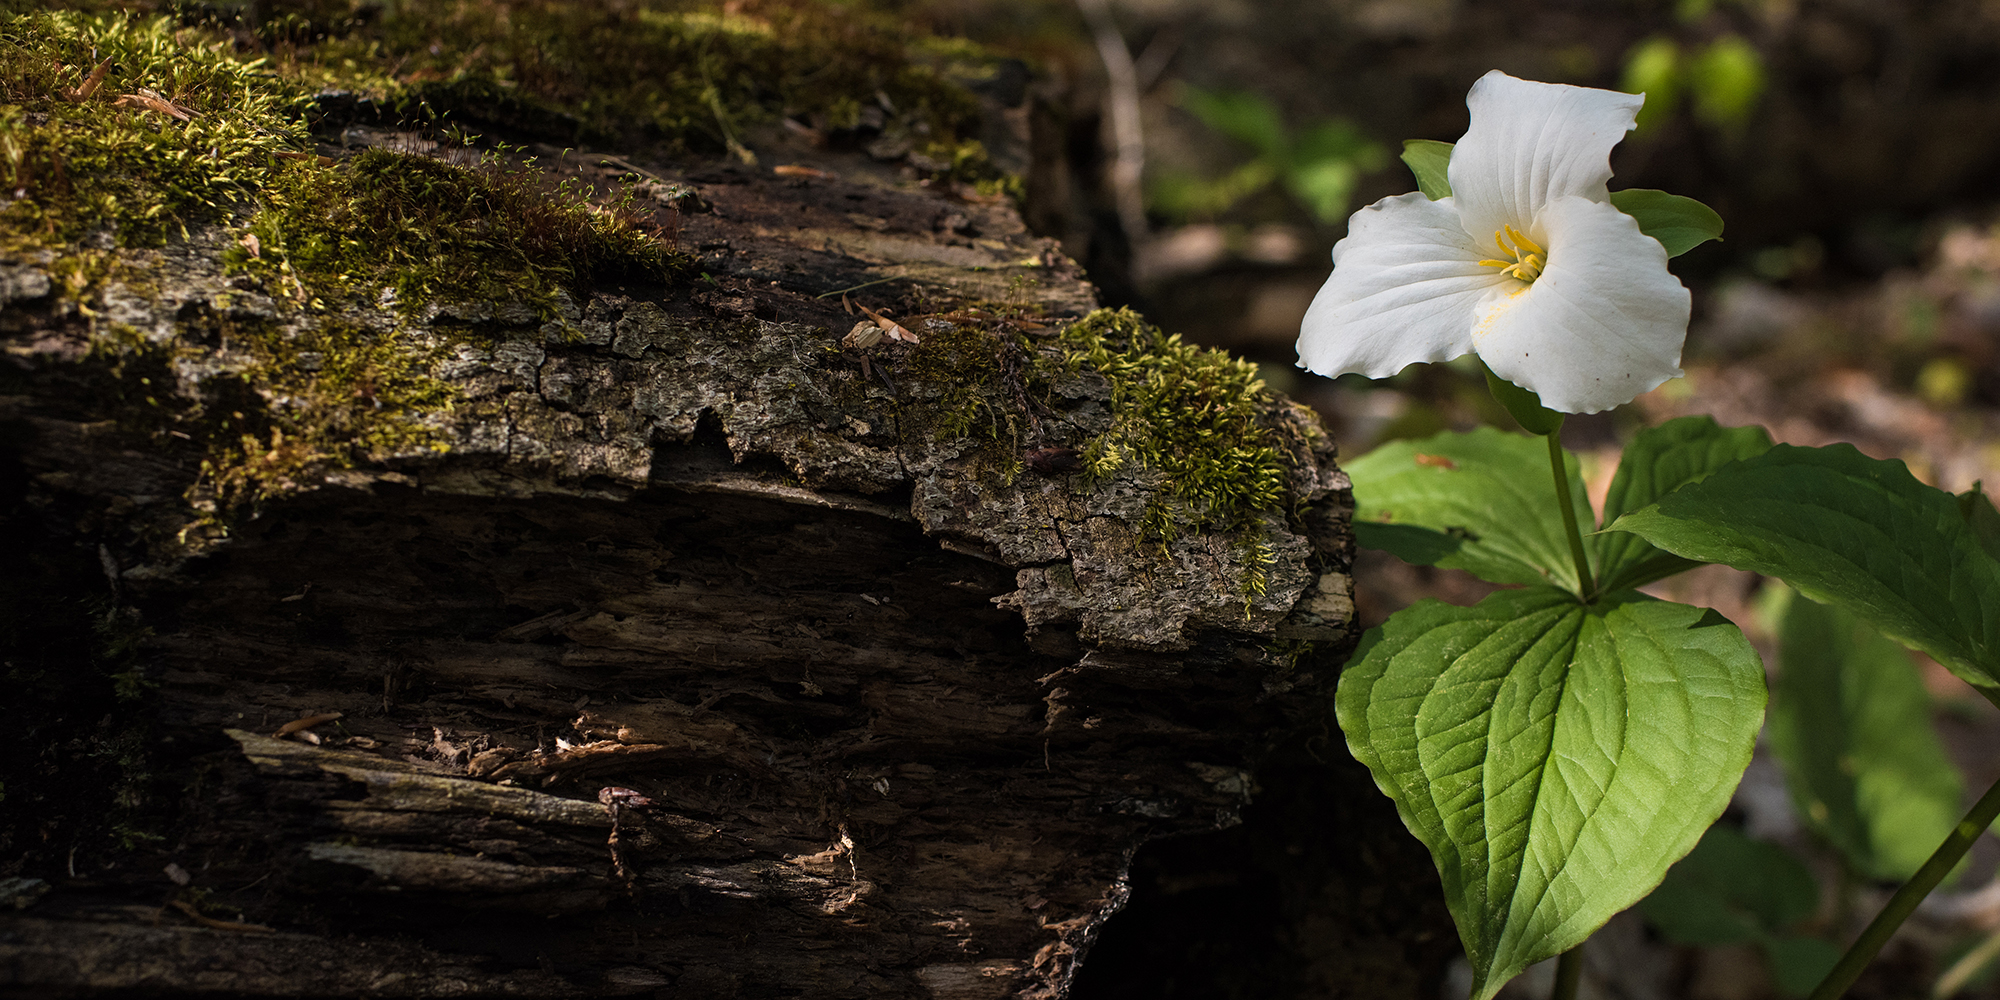 Flower on tree stump in forest